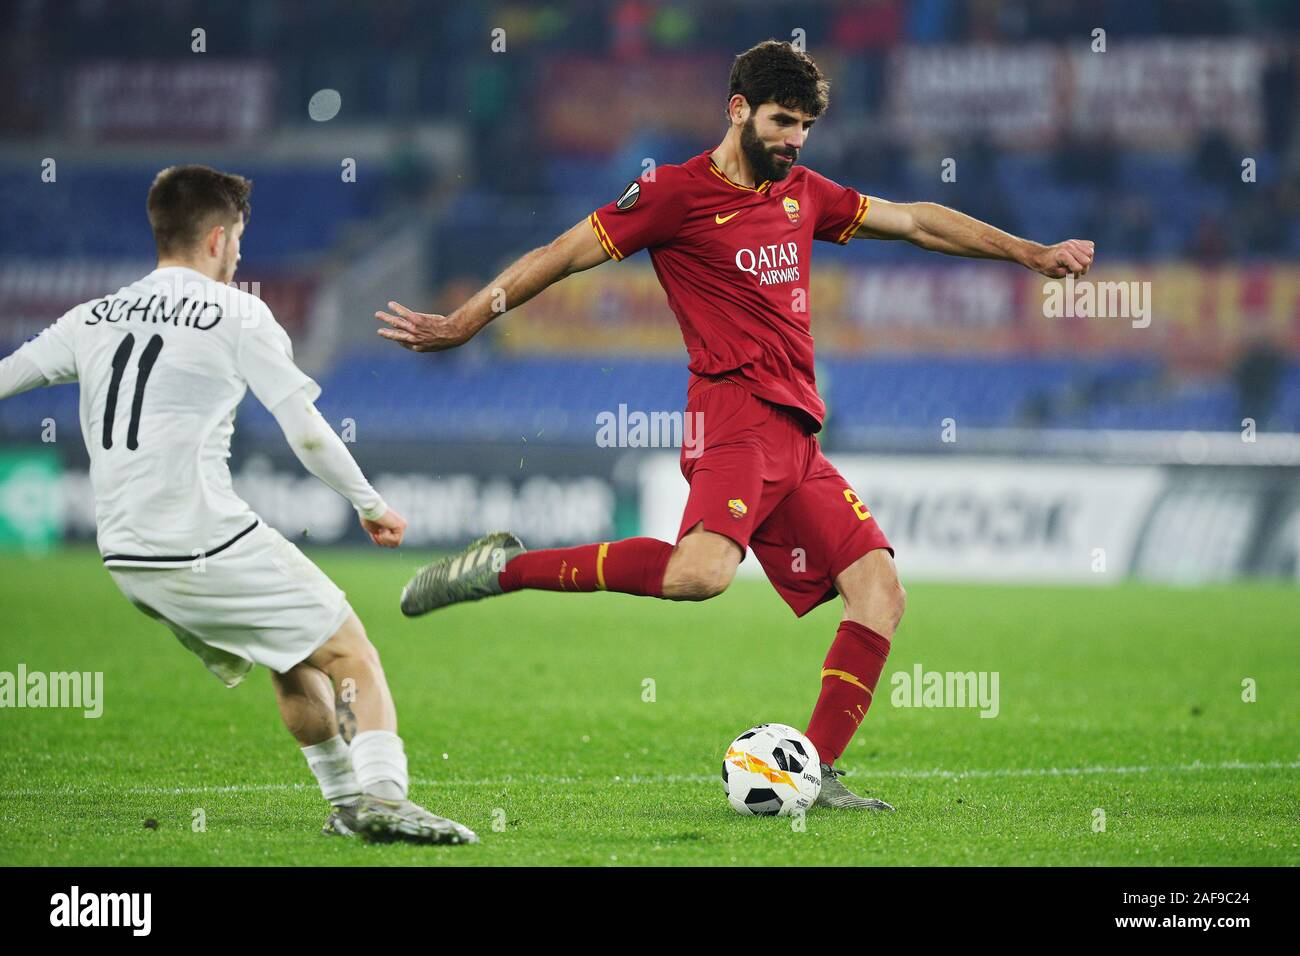 Federico Fazio of Roma in action during the UEFA Europa League, Group J football match between AS Roma and Wolfsberg AC on December 12, 2019 at Stadio Olimpico in Rome, Italy - Photo Federico Proietti/ESPA-Images Stock Photo